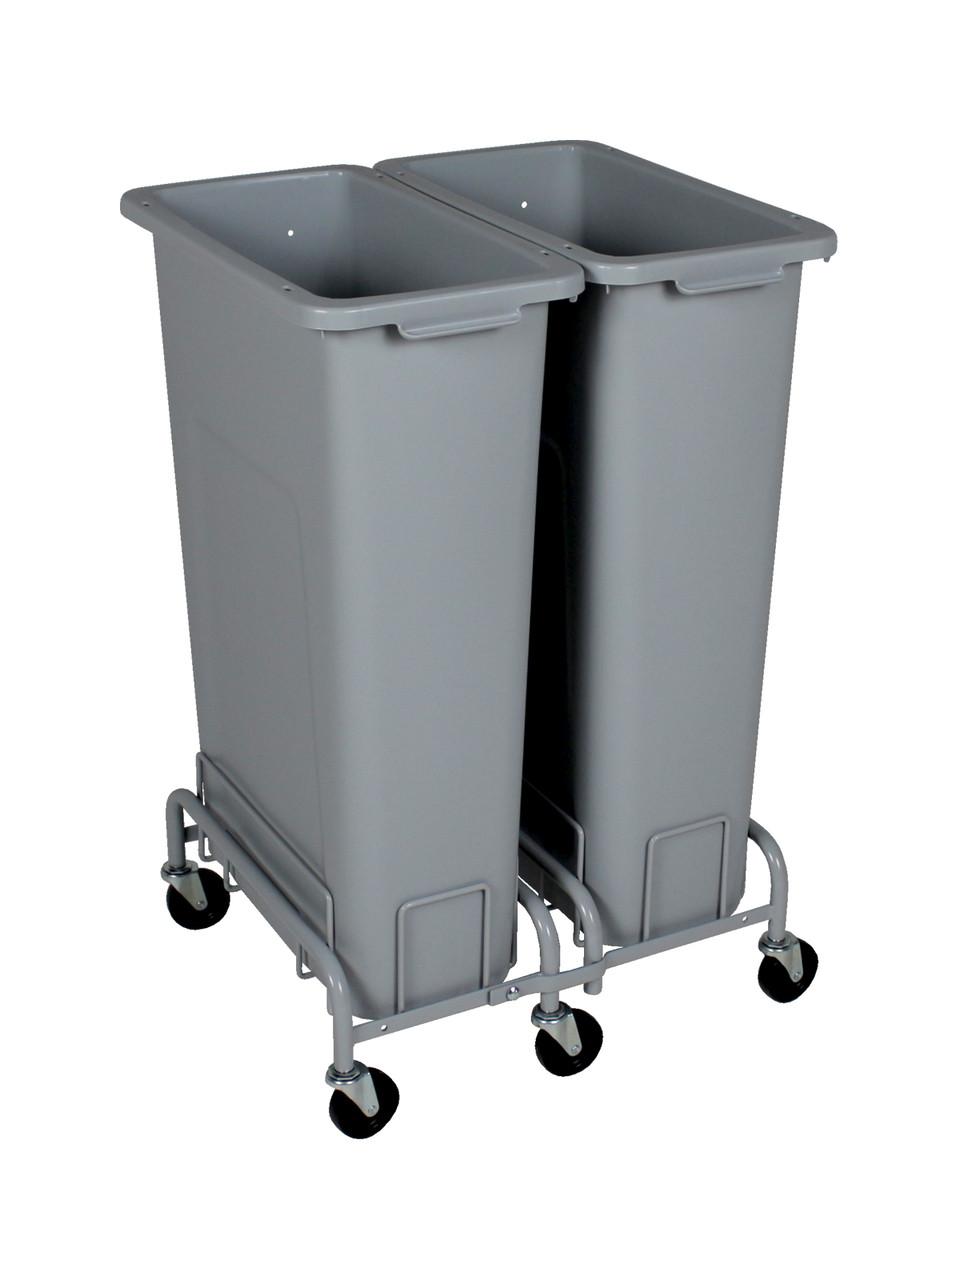 46 Gallon Plastic Skinny Trash Cans with Wheels Combo